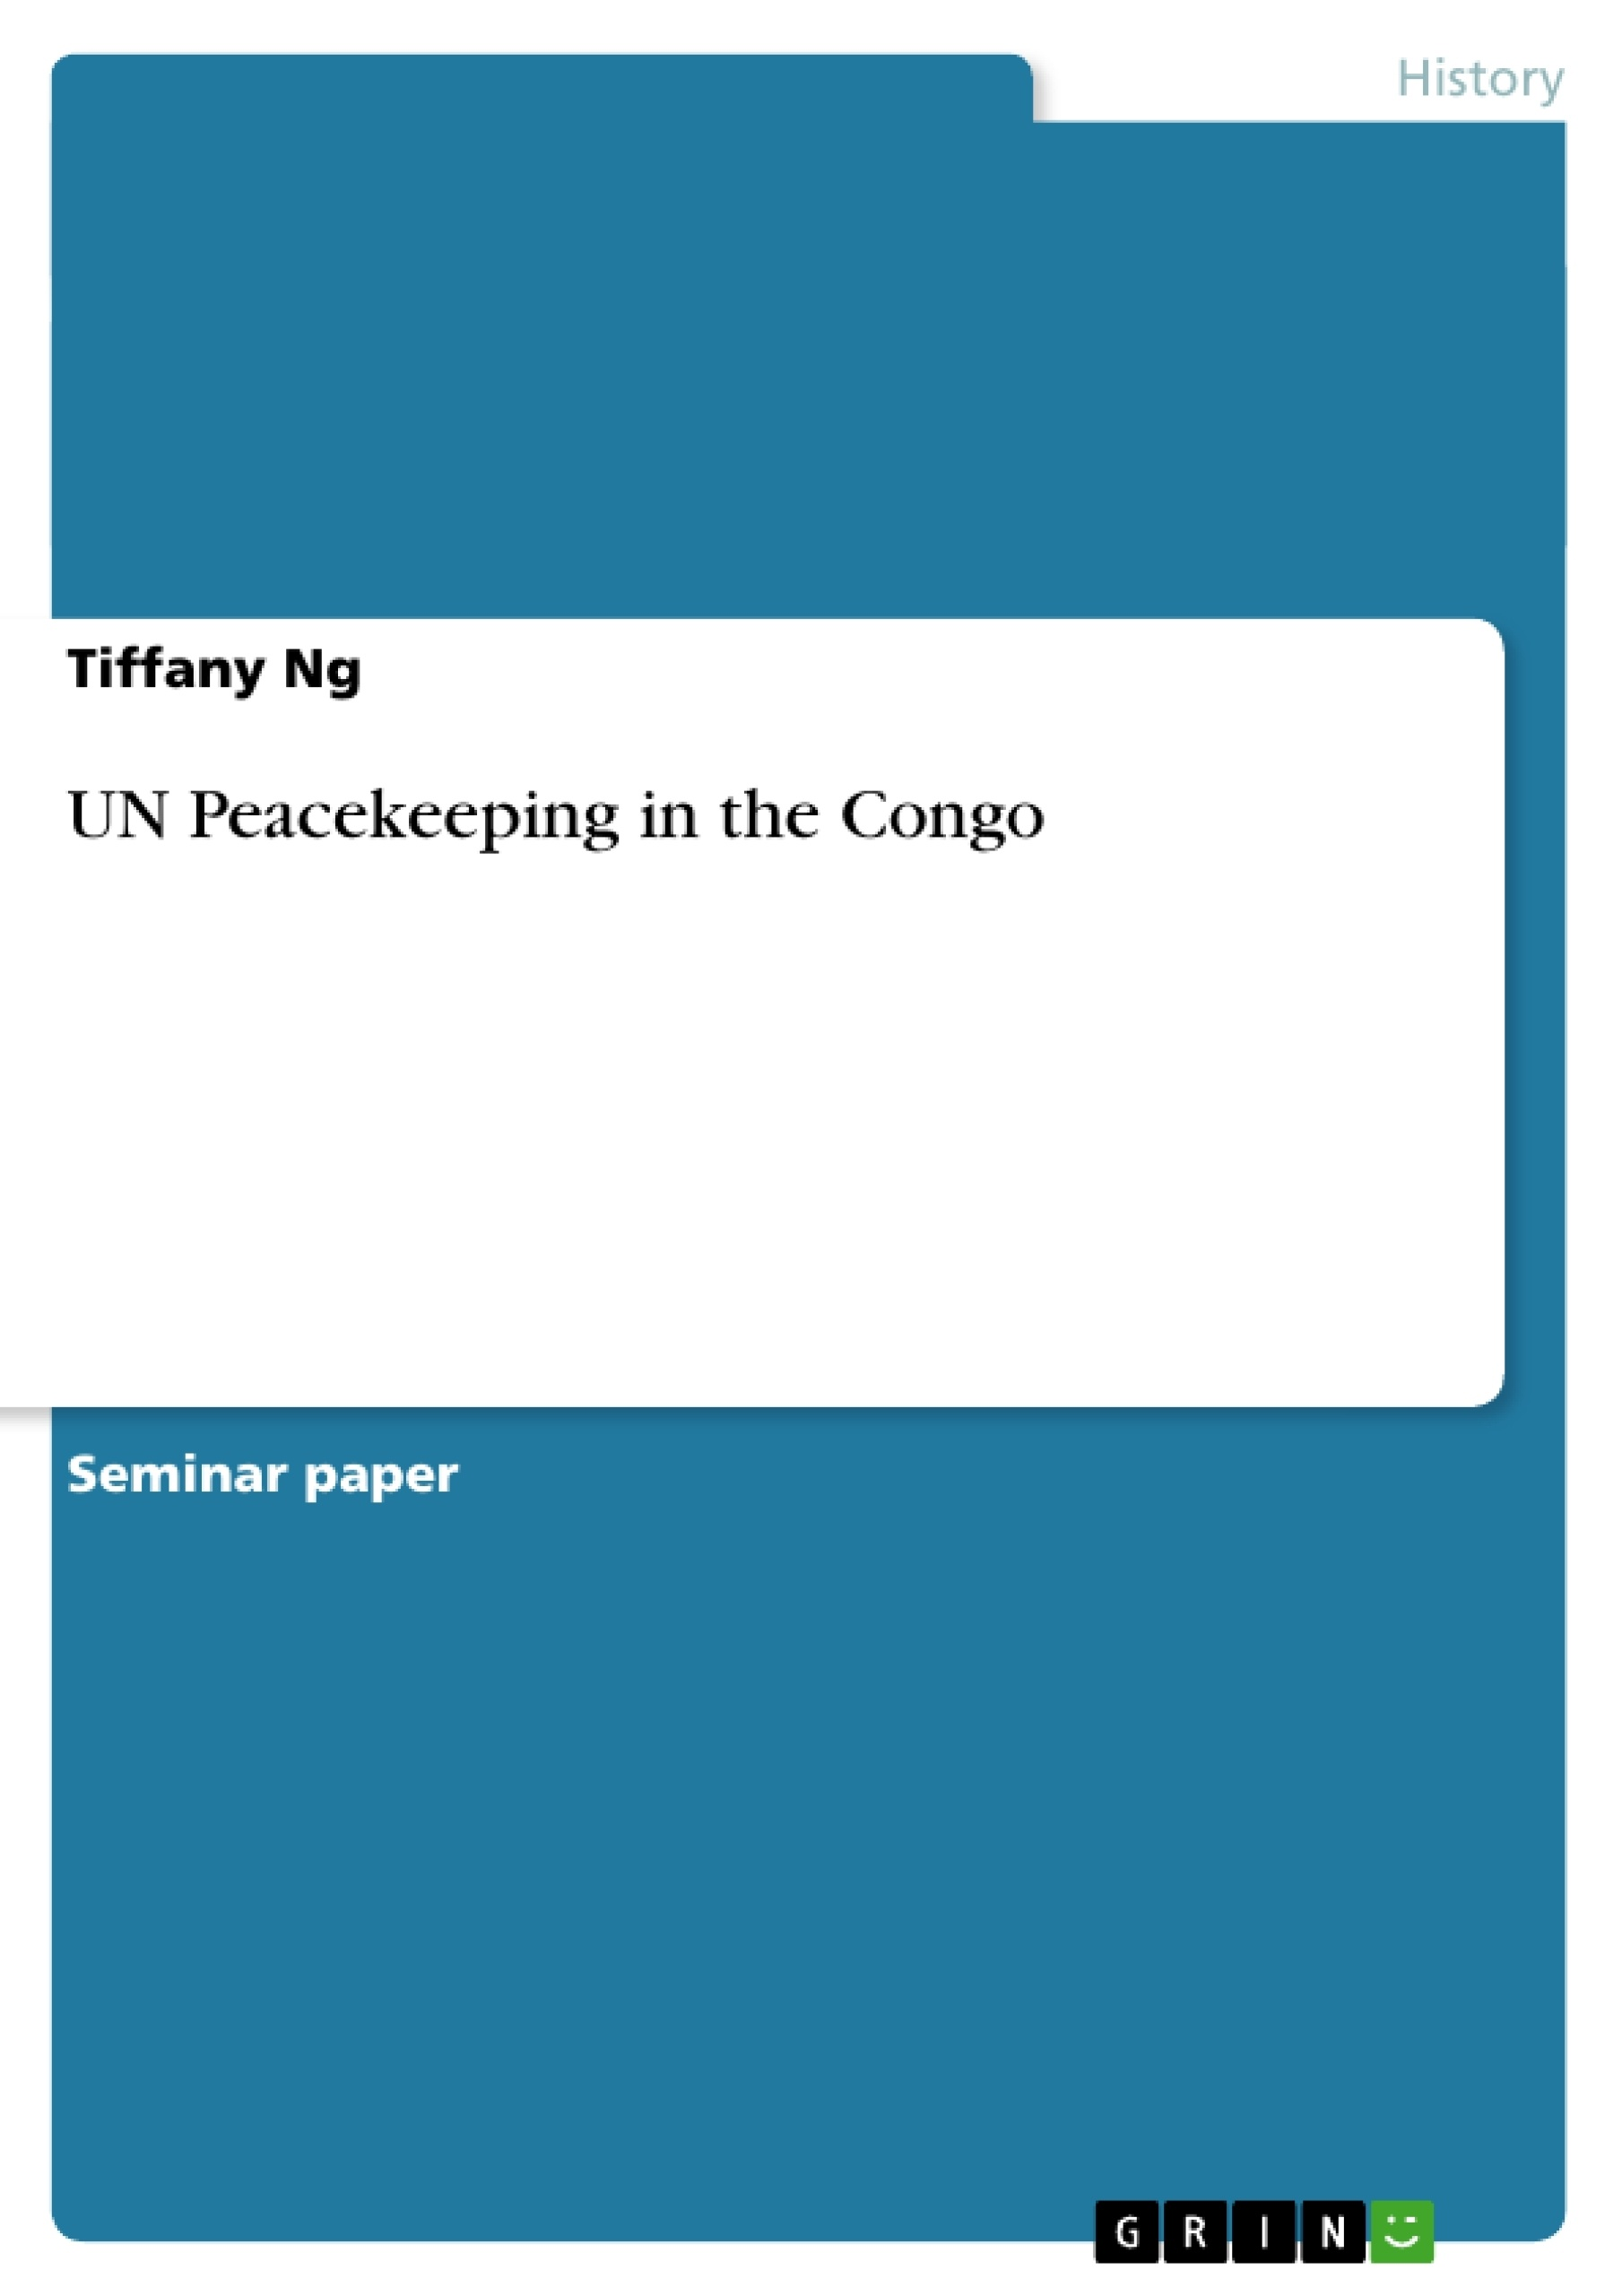 Title: UN Peacekeeping in the Congo